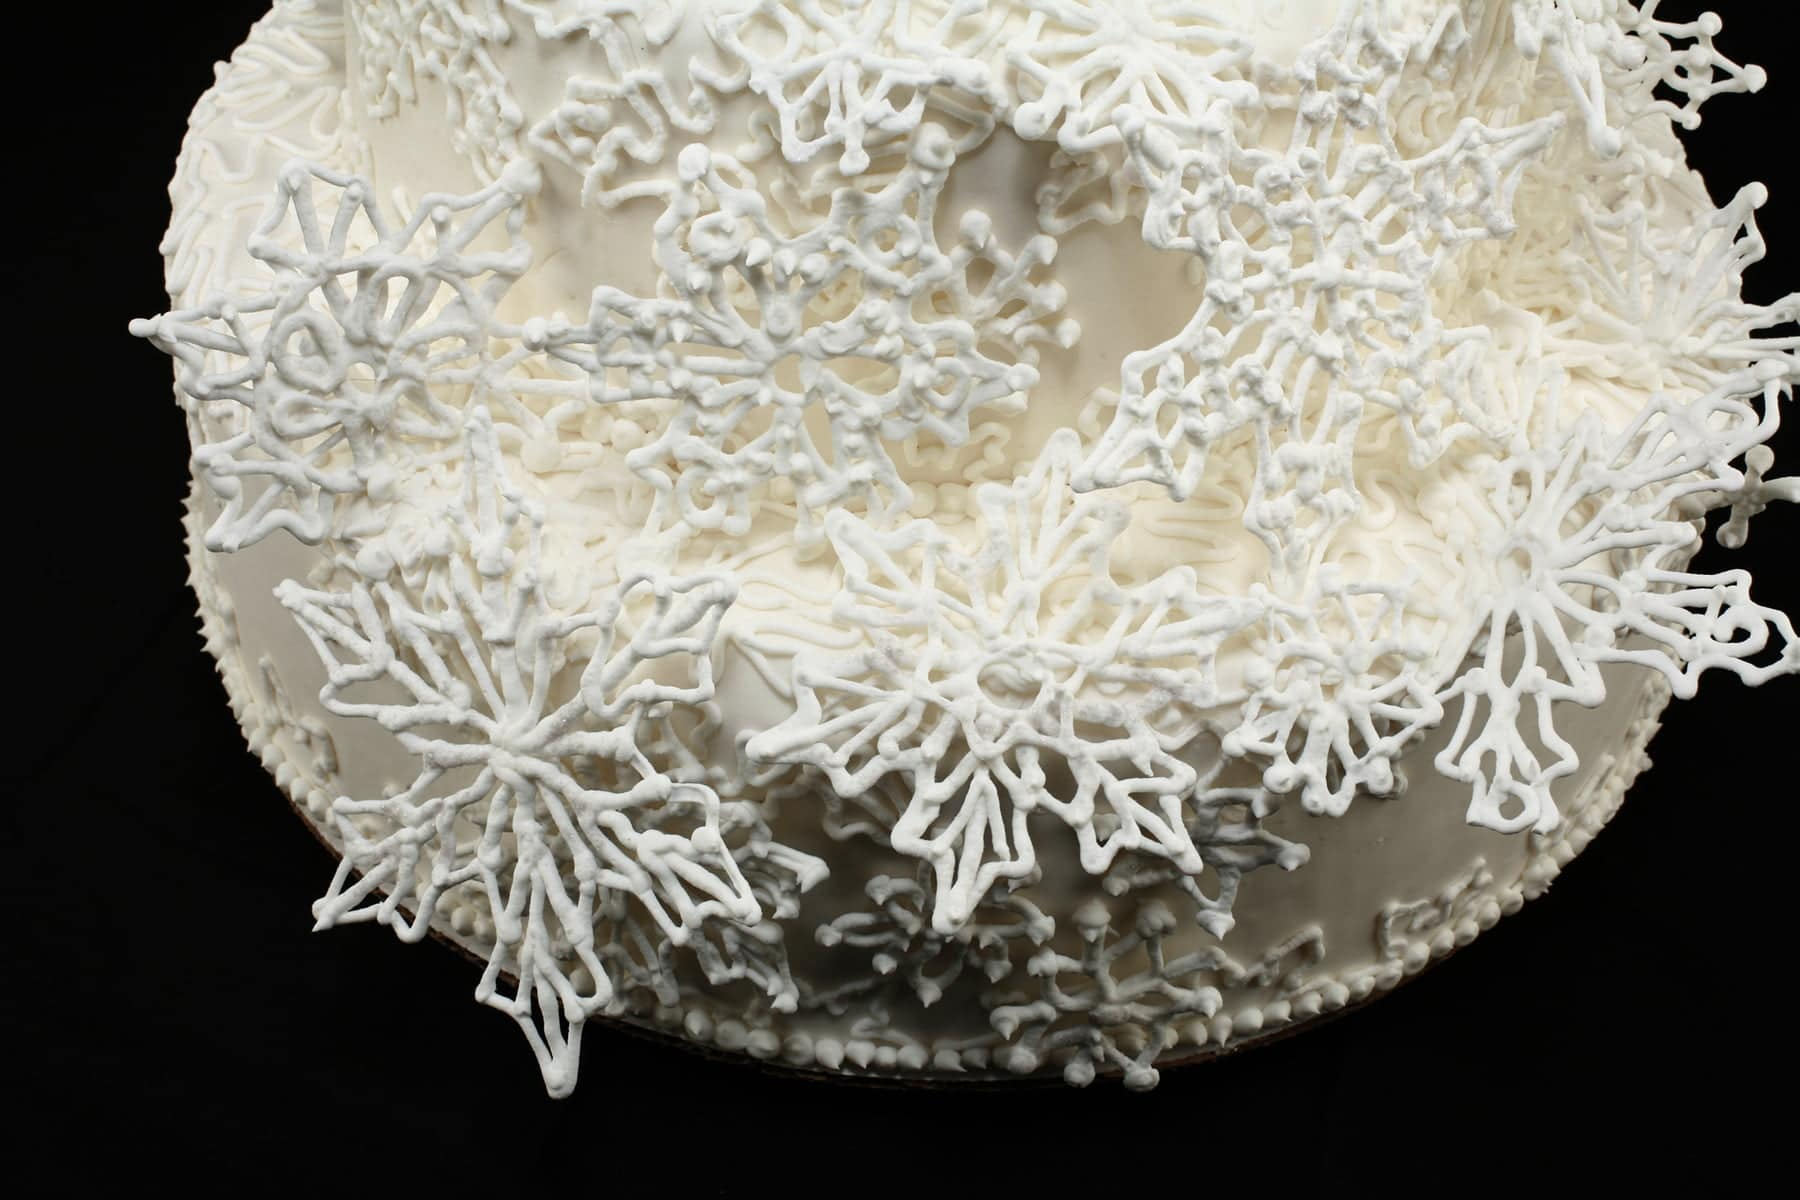 Detail photo of a 4 tier white wedding cake, piped with an intricate lace design, and adorned with a cascade of 3D piped snowflakes.